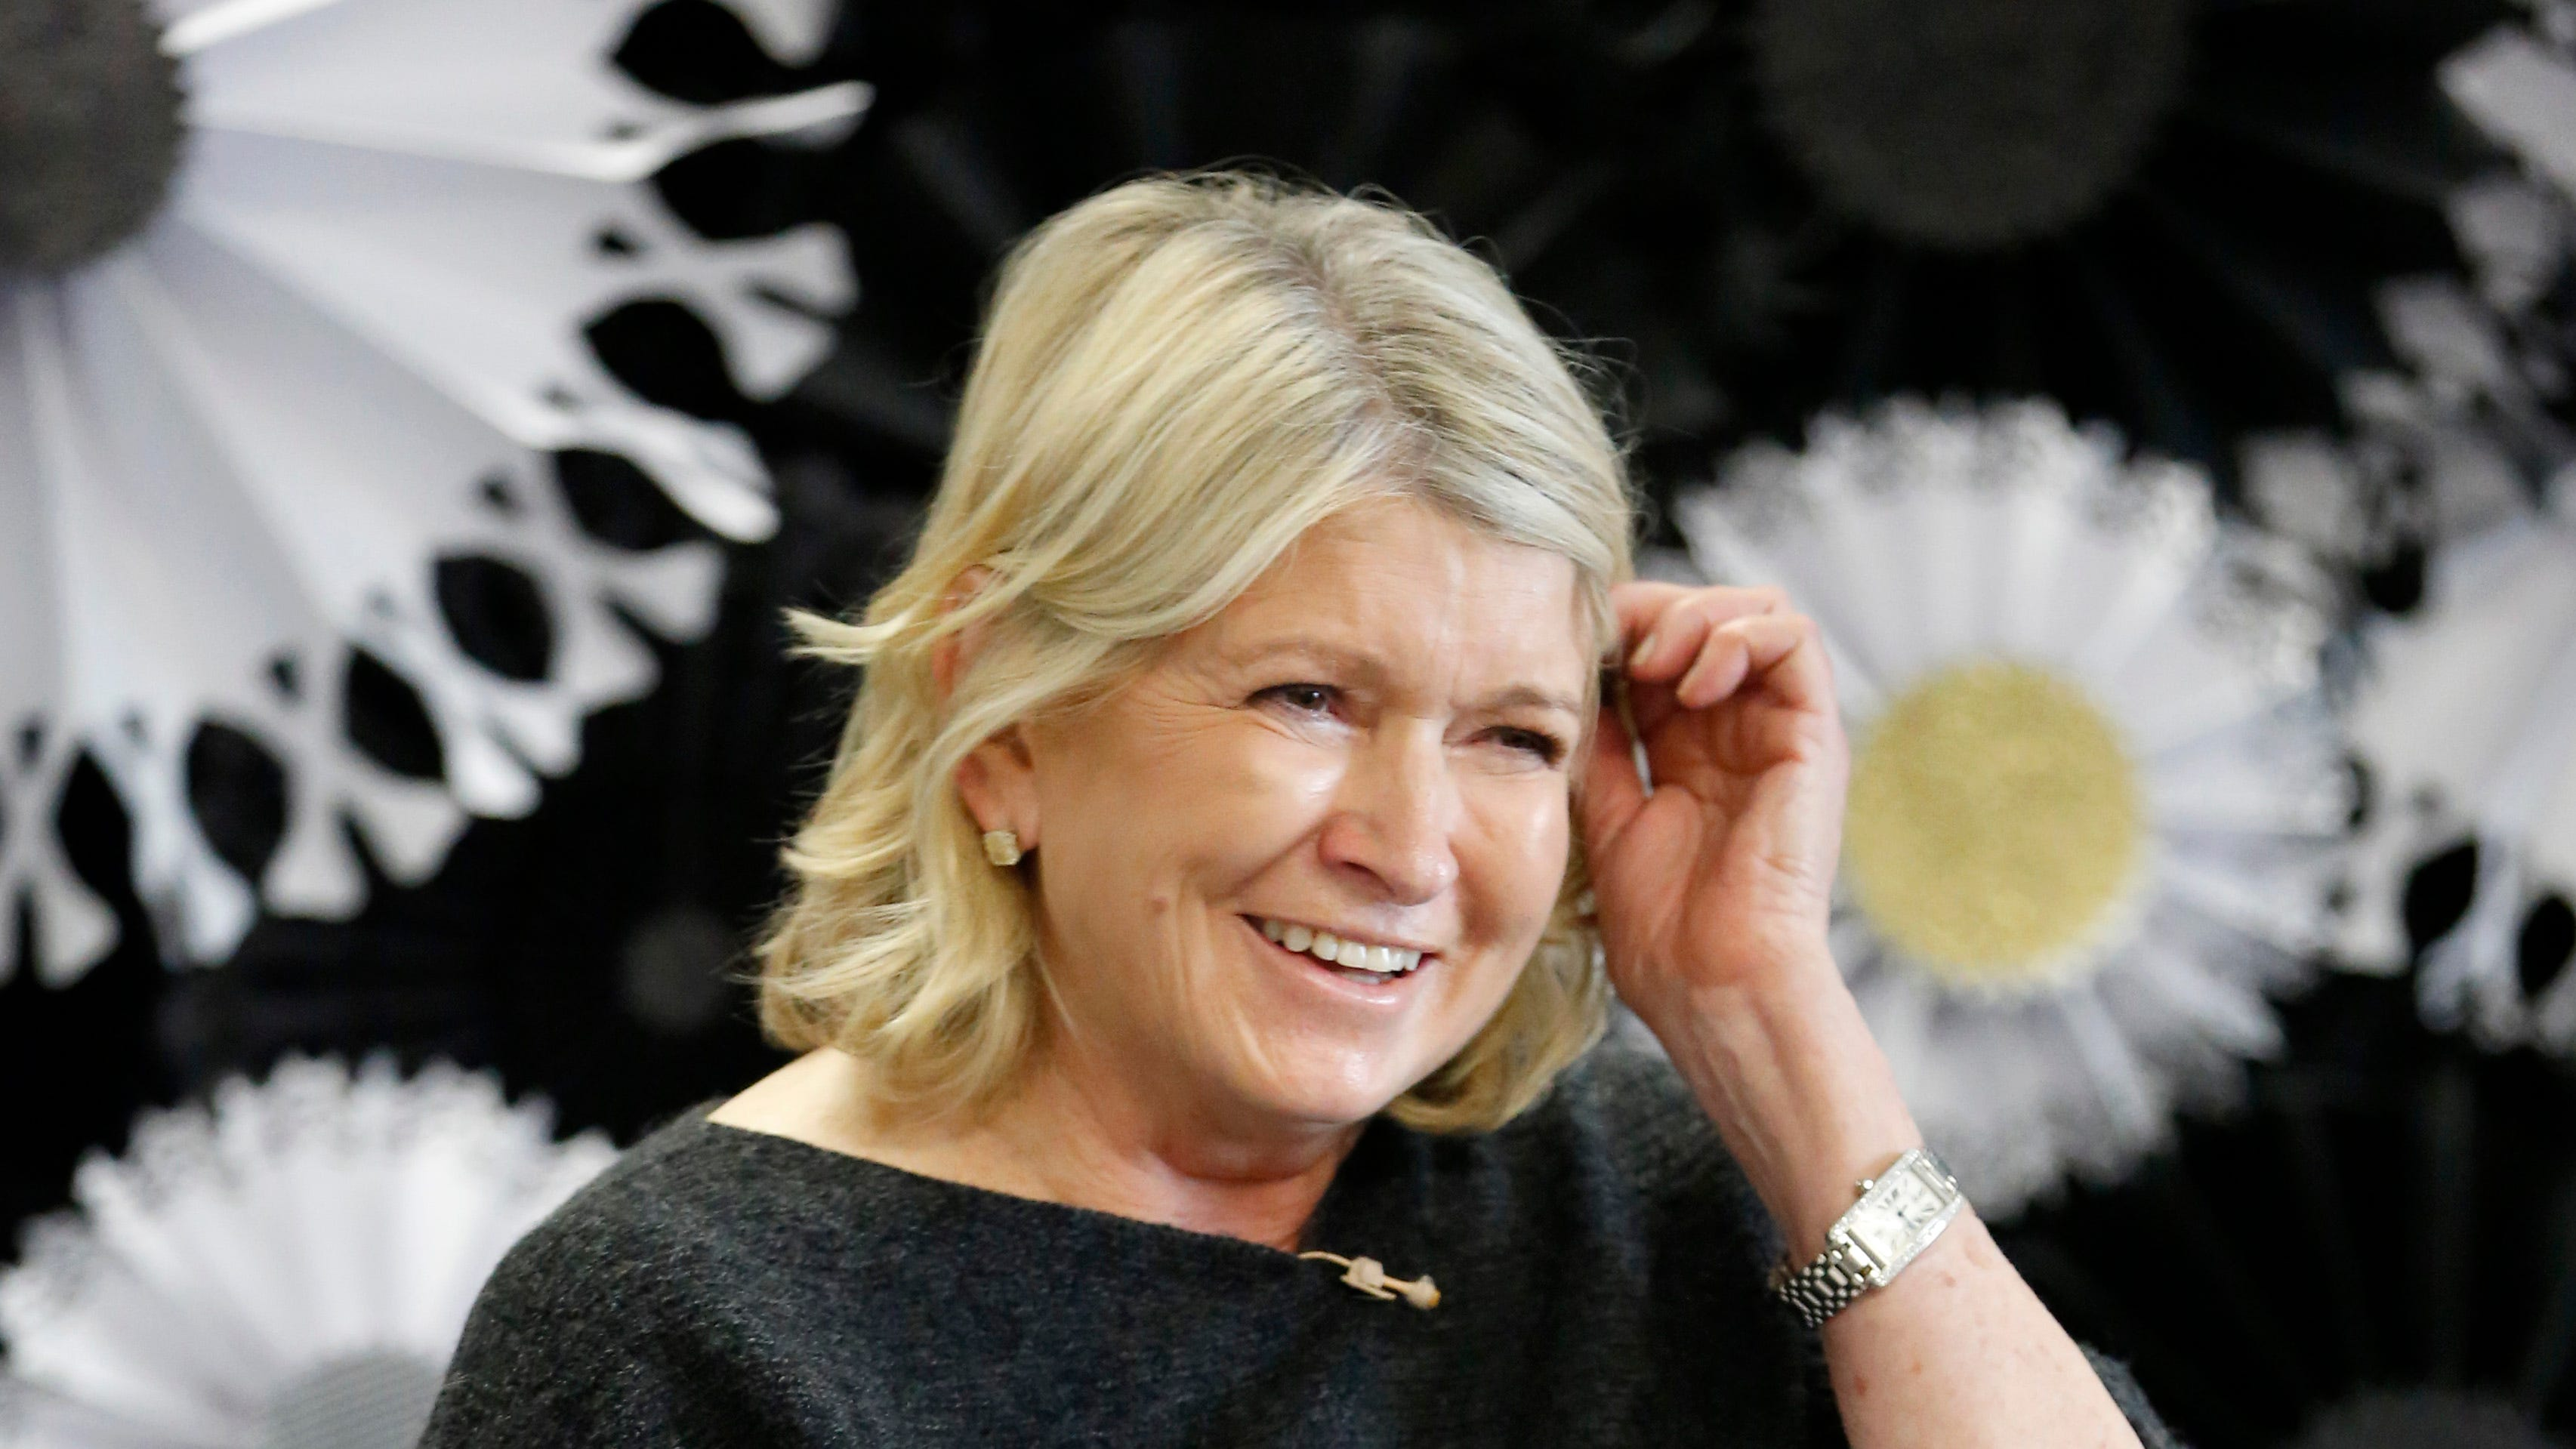 """""""The Queen of Halloween,"""" Martha Stewart, makes spectacularly spooky costumes and party accessories with Cricut and Michaels at a spirited DIY event on October 2, 2018 in New York City."""